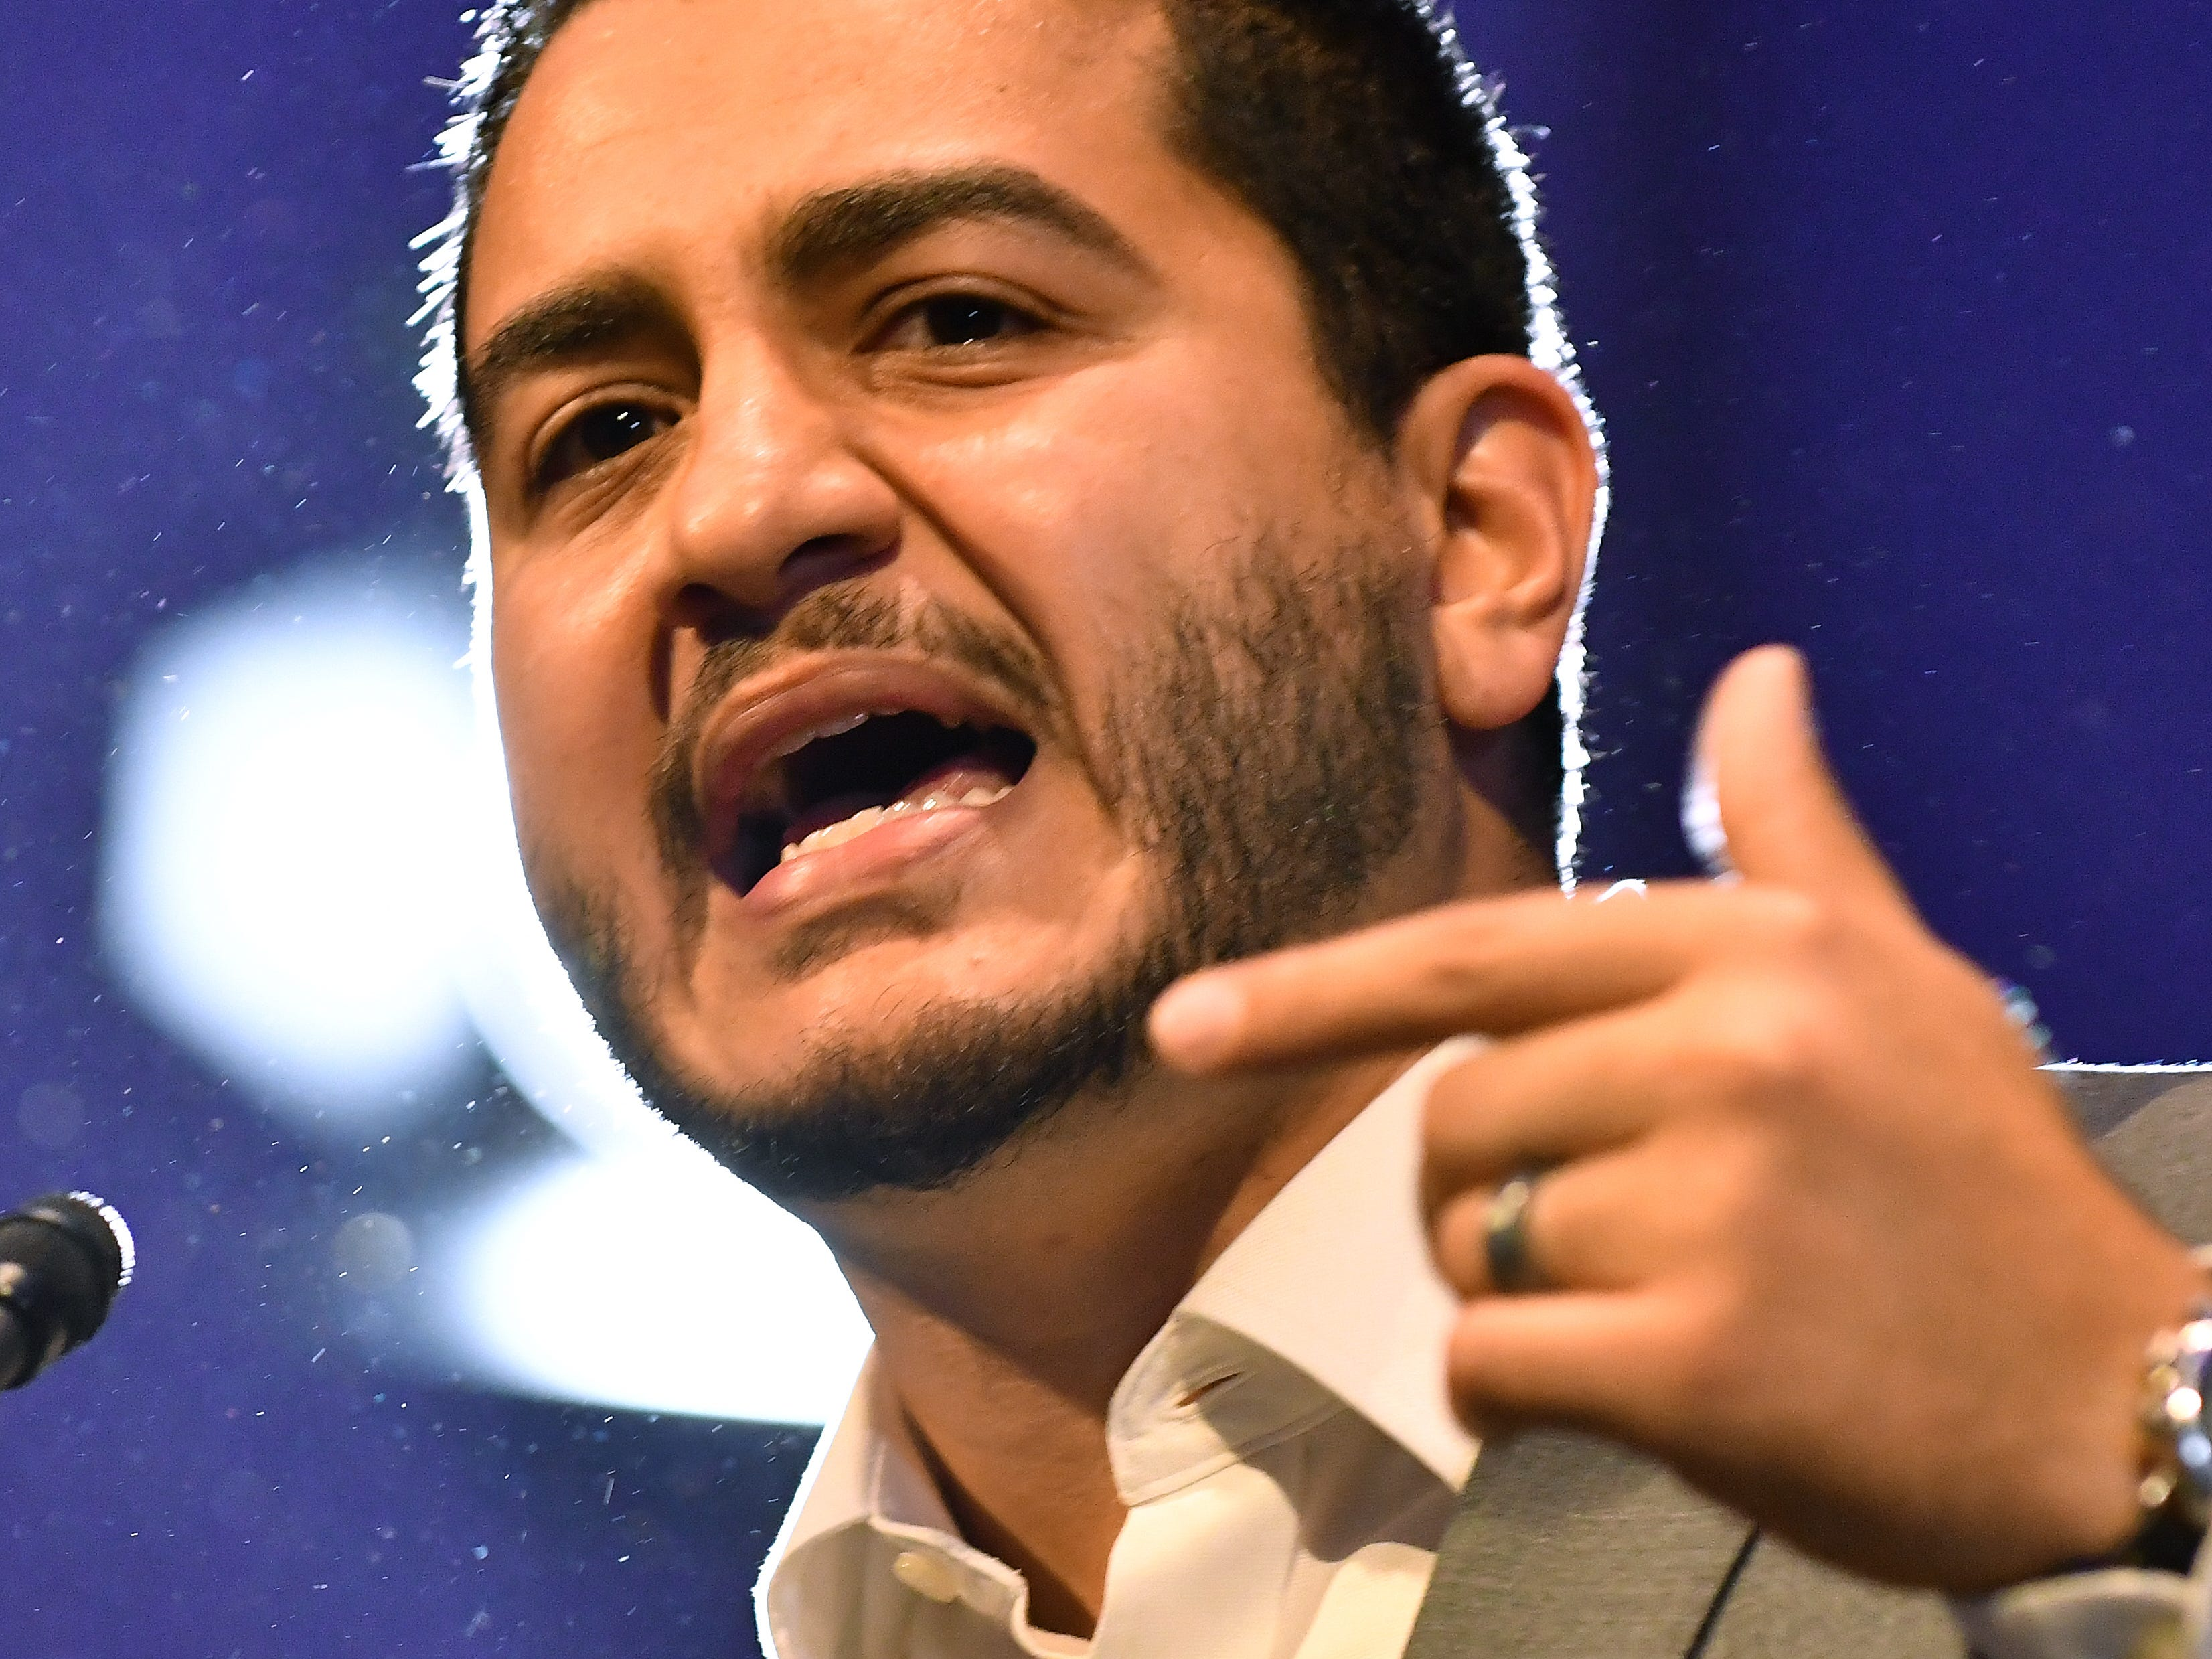 Michigan Democratic gubernatorial  candidate Abdul El-Sayed at Cobo Center.